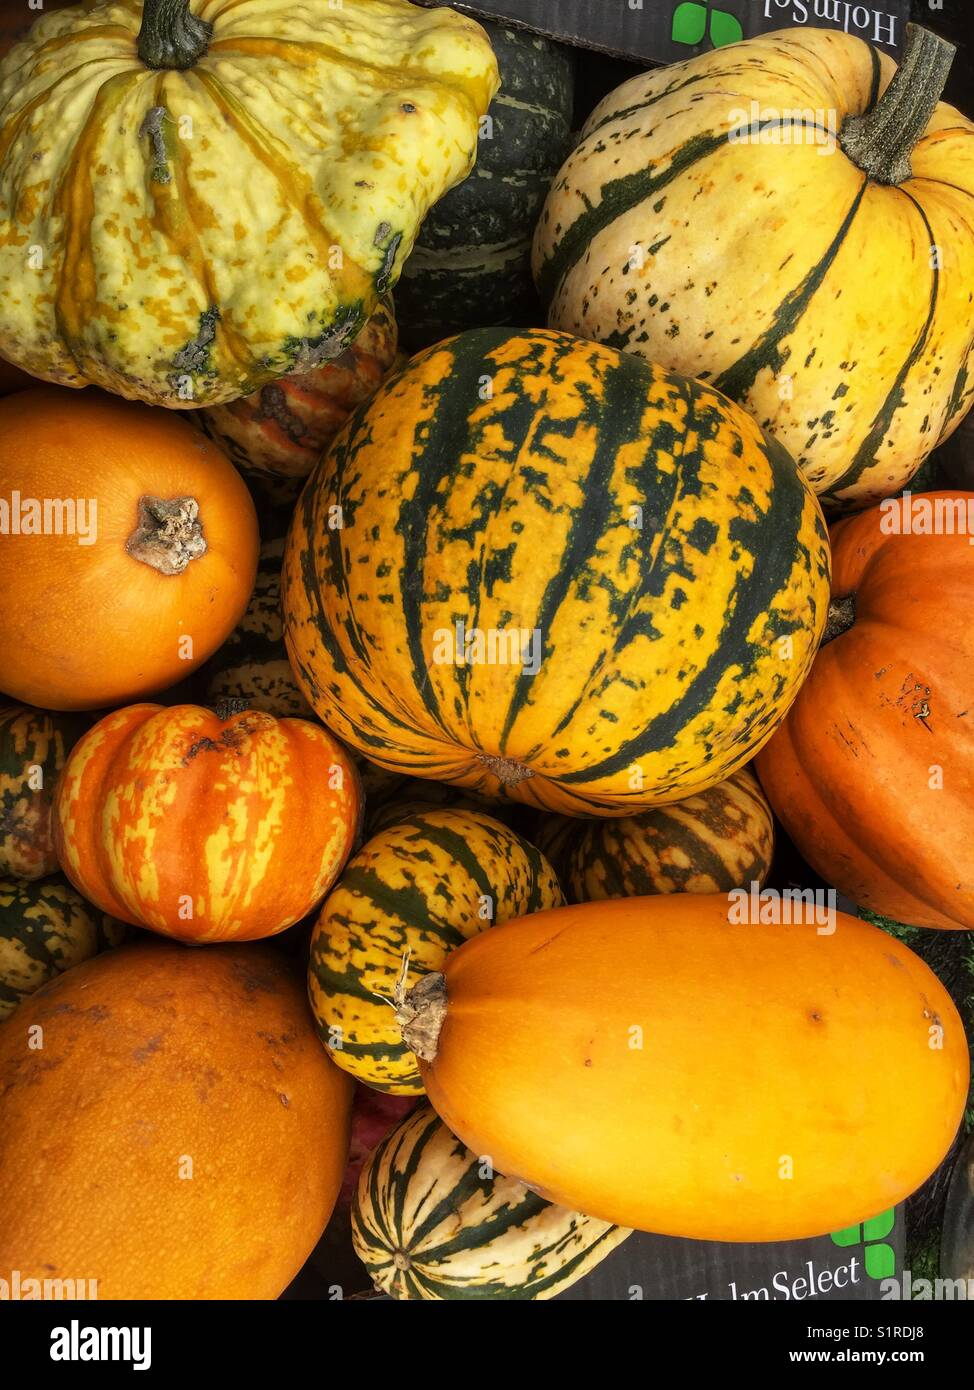 Pumpkins for sale at Portobello Road Market in London, England - Stock Image